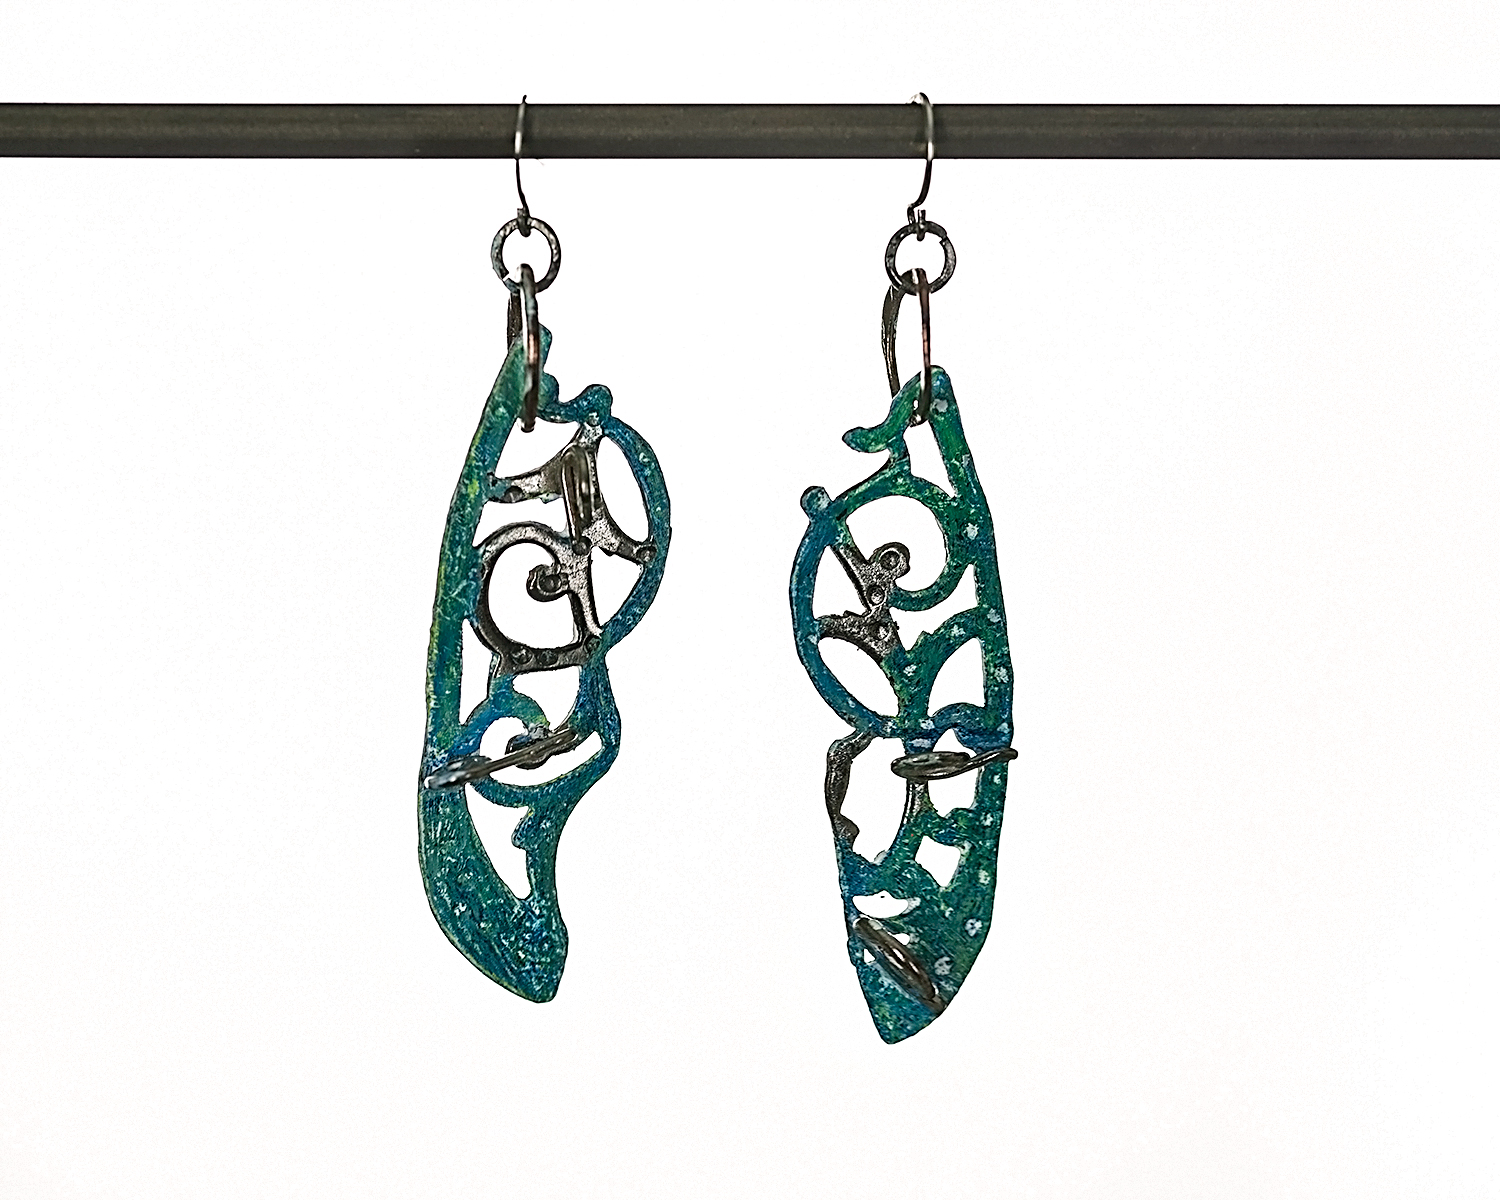 SOFT SUMMER EARRINGS ~ Repurposed hand-forged silver with colorized accent